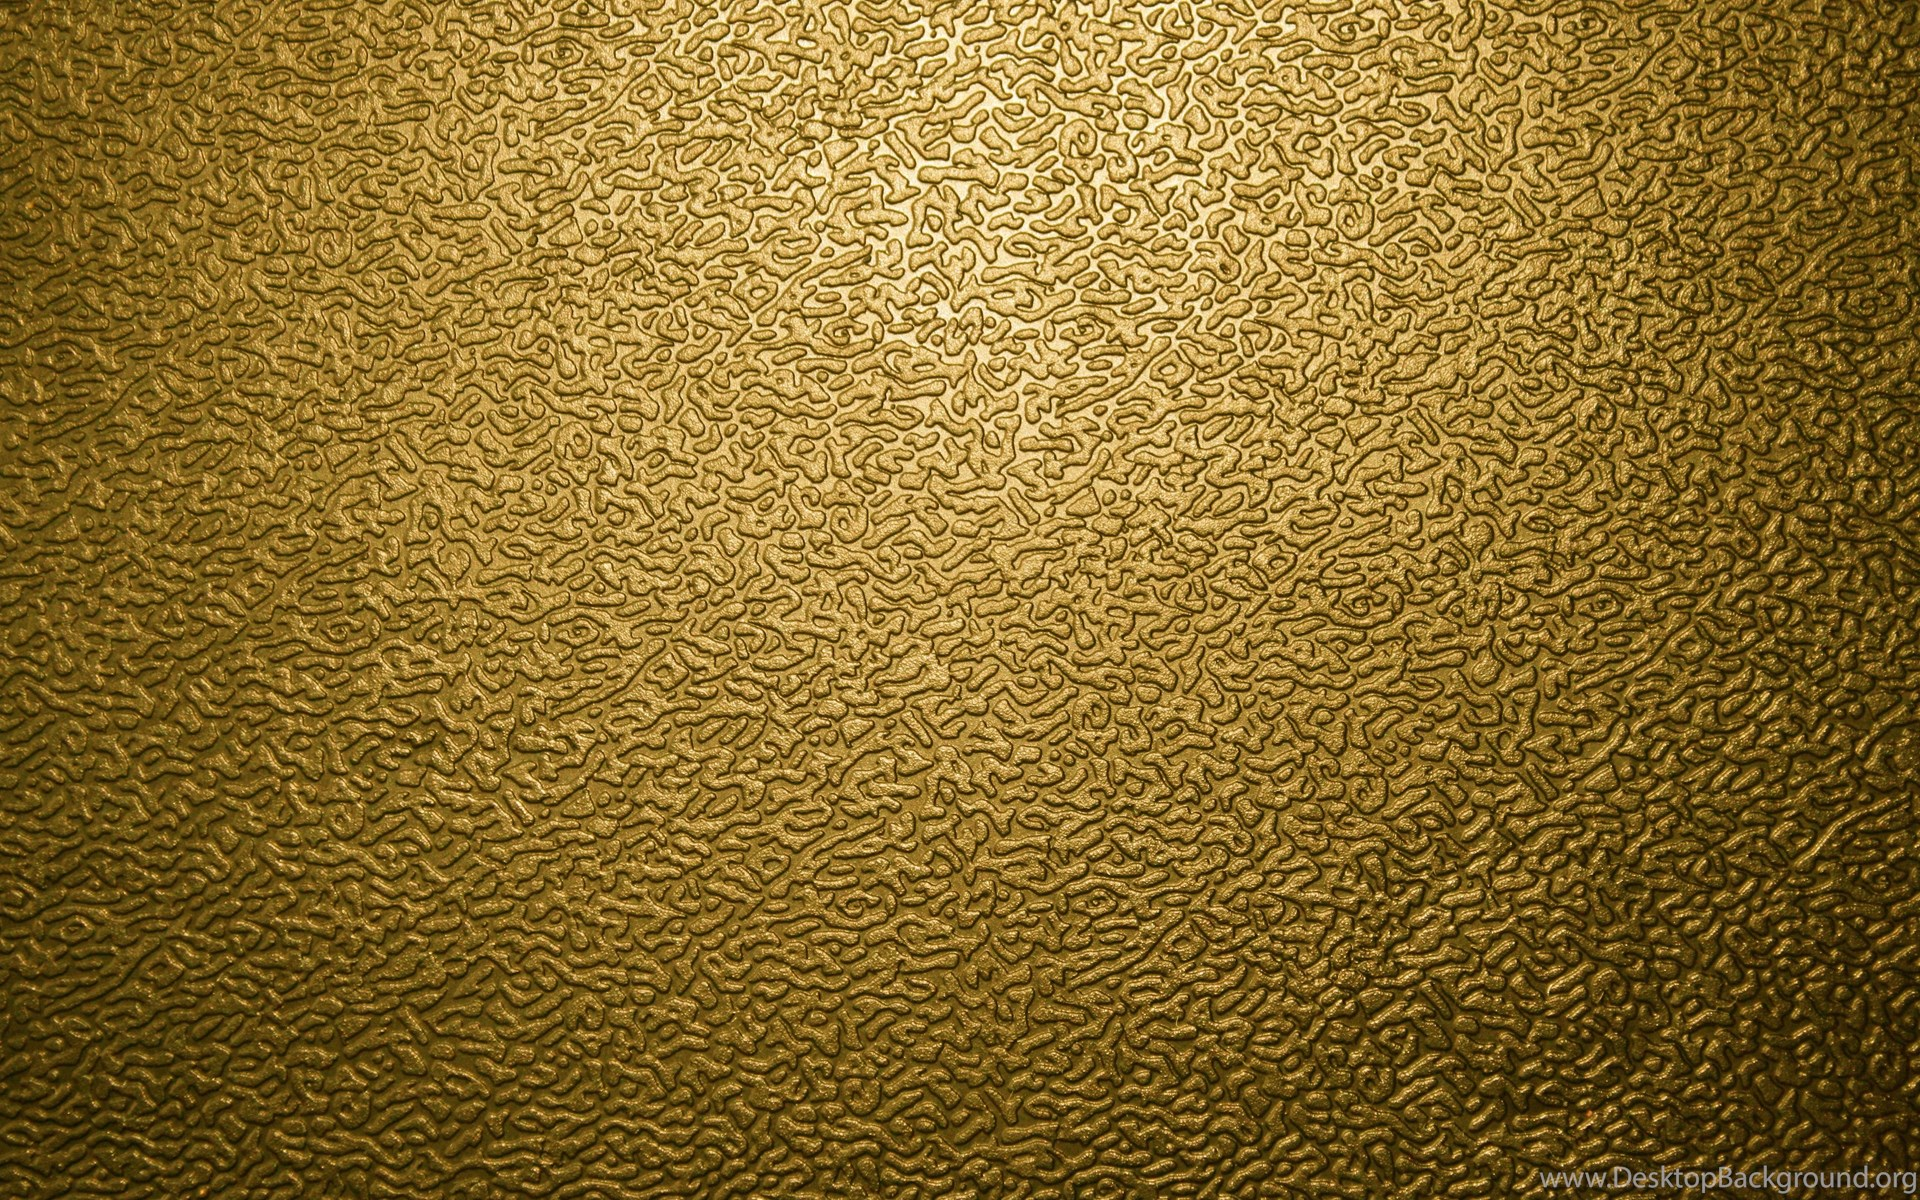 Metallic Gold Color Wallpaper Desktop Background. Comfortable Sectionals. Acrylic Dining Chairs. Tittle Brothers. Cost Of Interior Painting. Craftsman Pendant Light. Industrial Bookshelves. Blue And Brown Rug. Exposed Rafter Tails